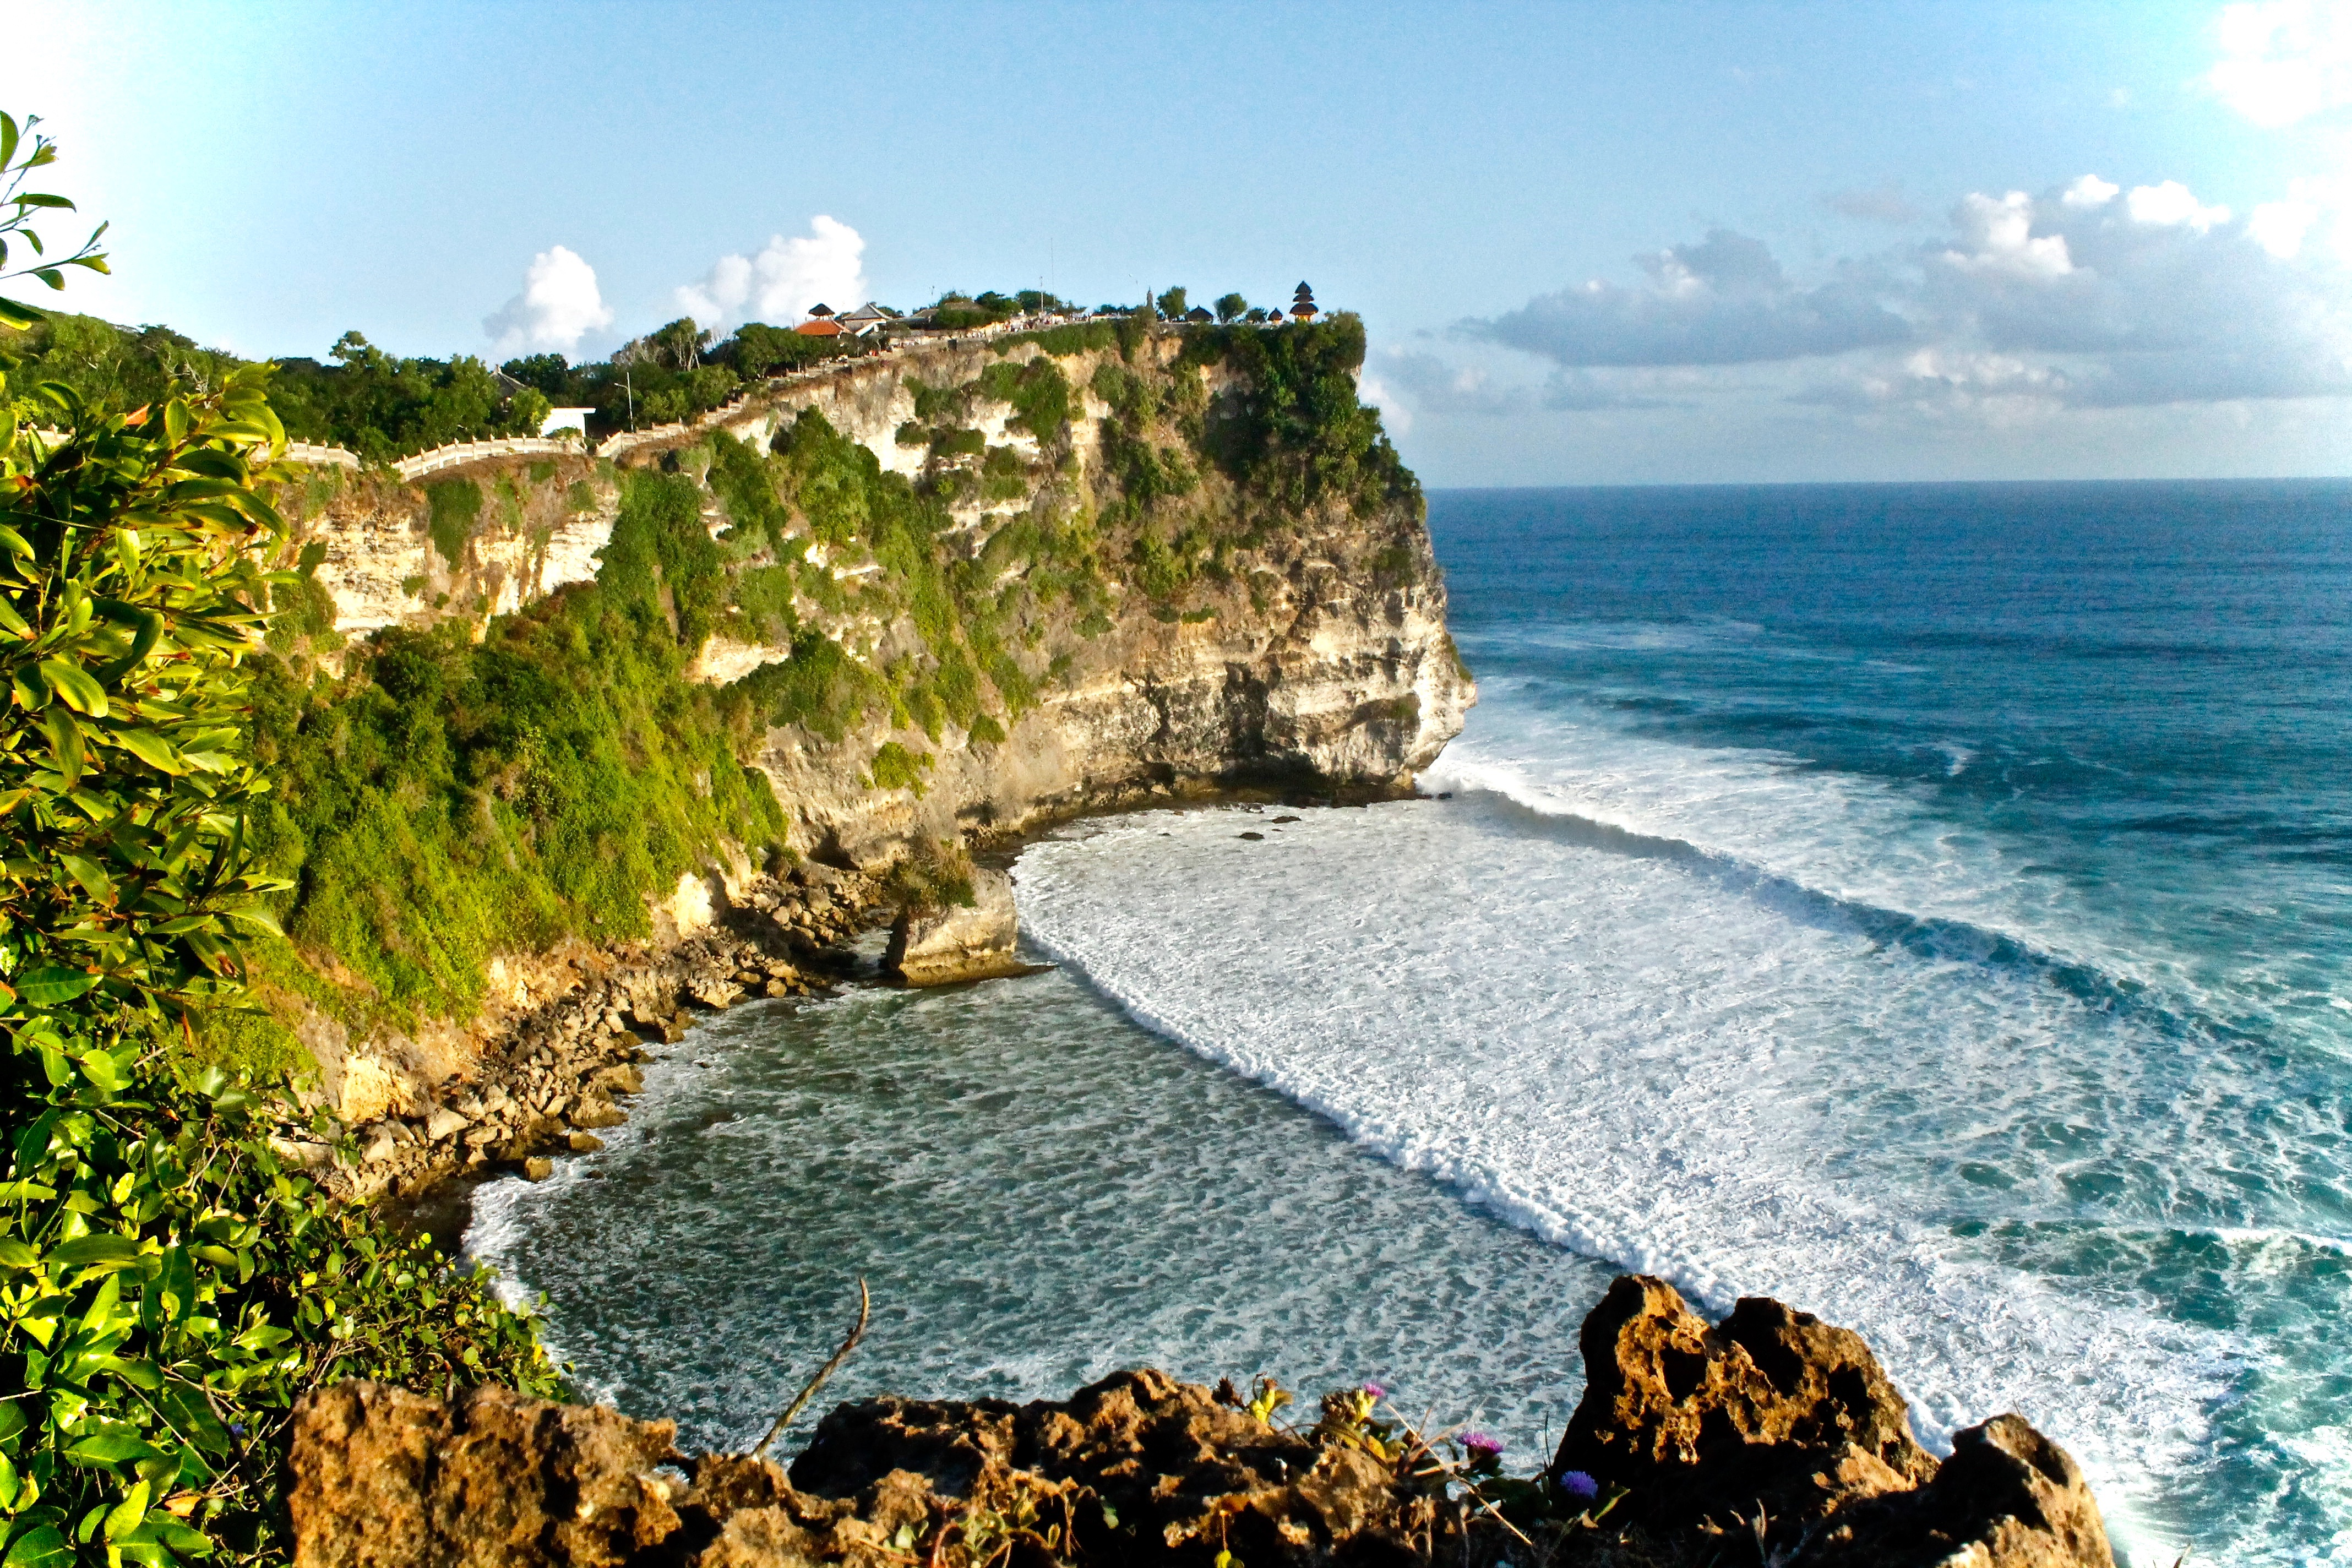 The view from the EDGE - BALI